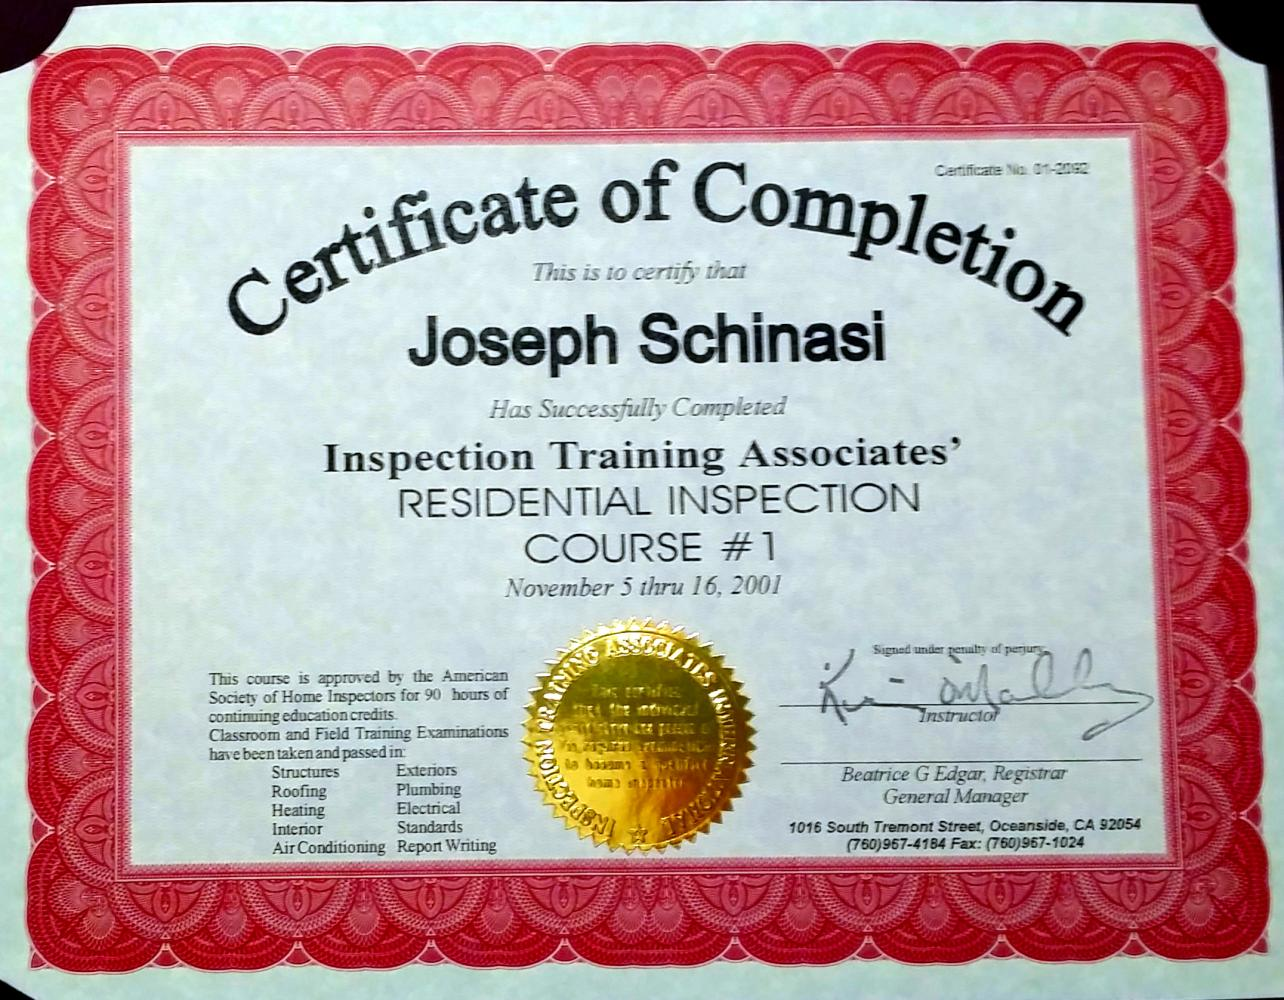 Home Inspection Certificate (The Family Business)